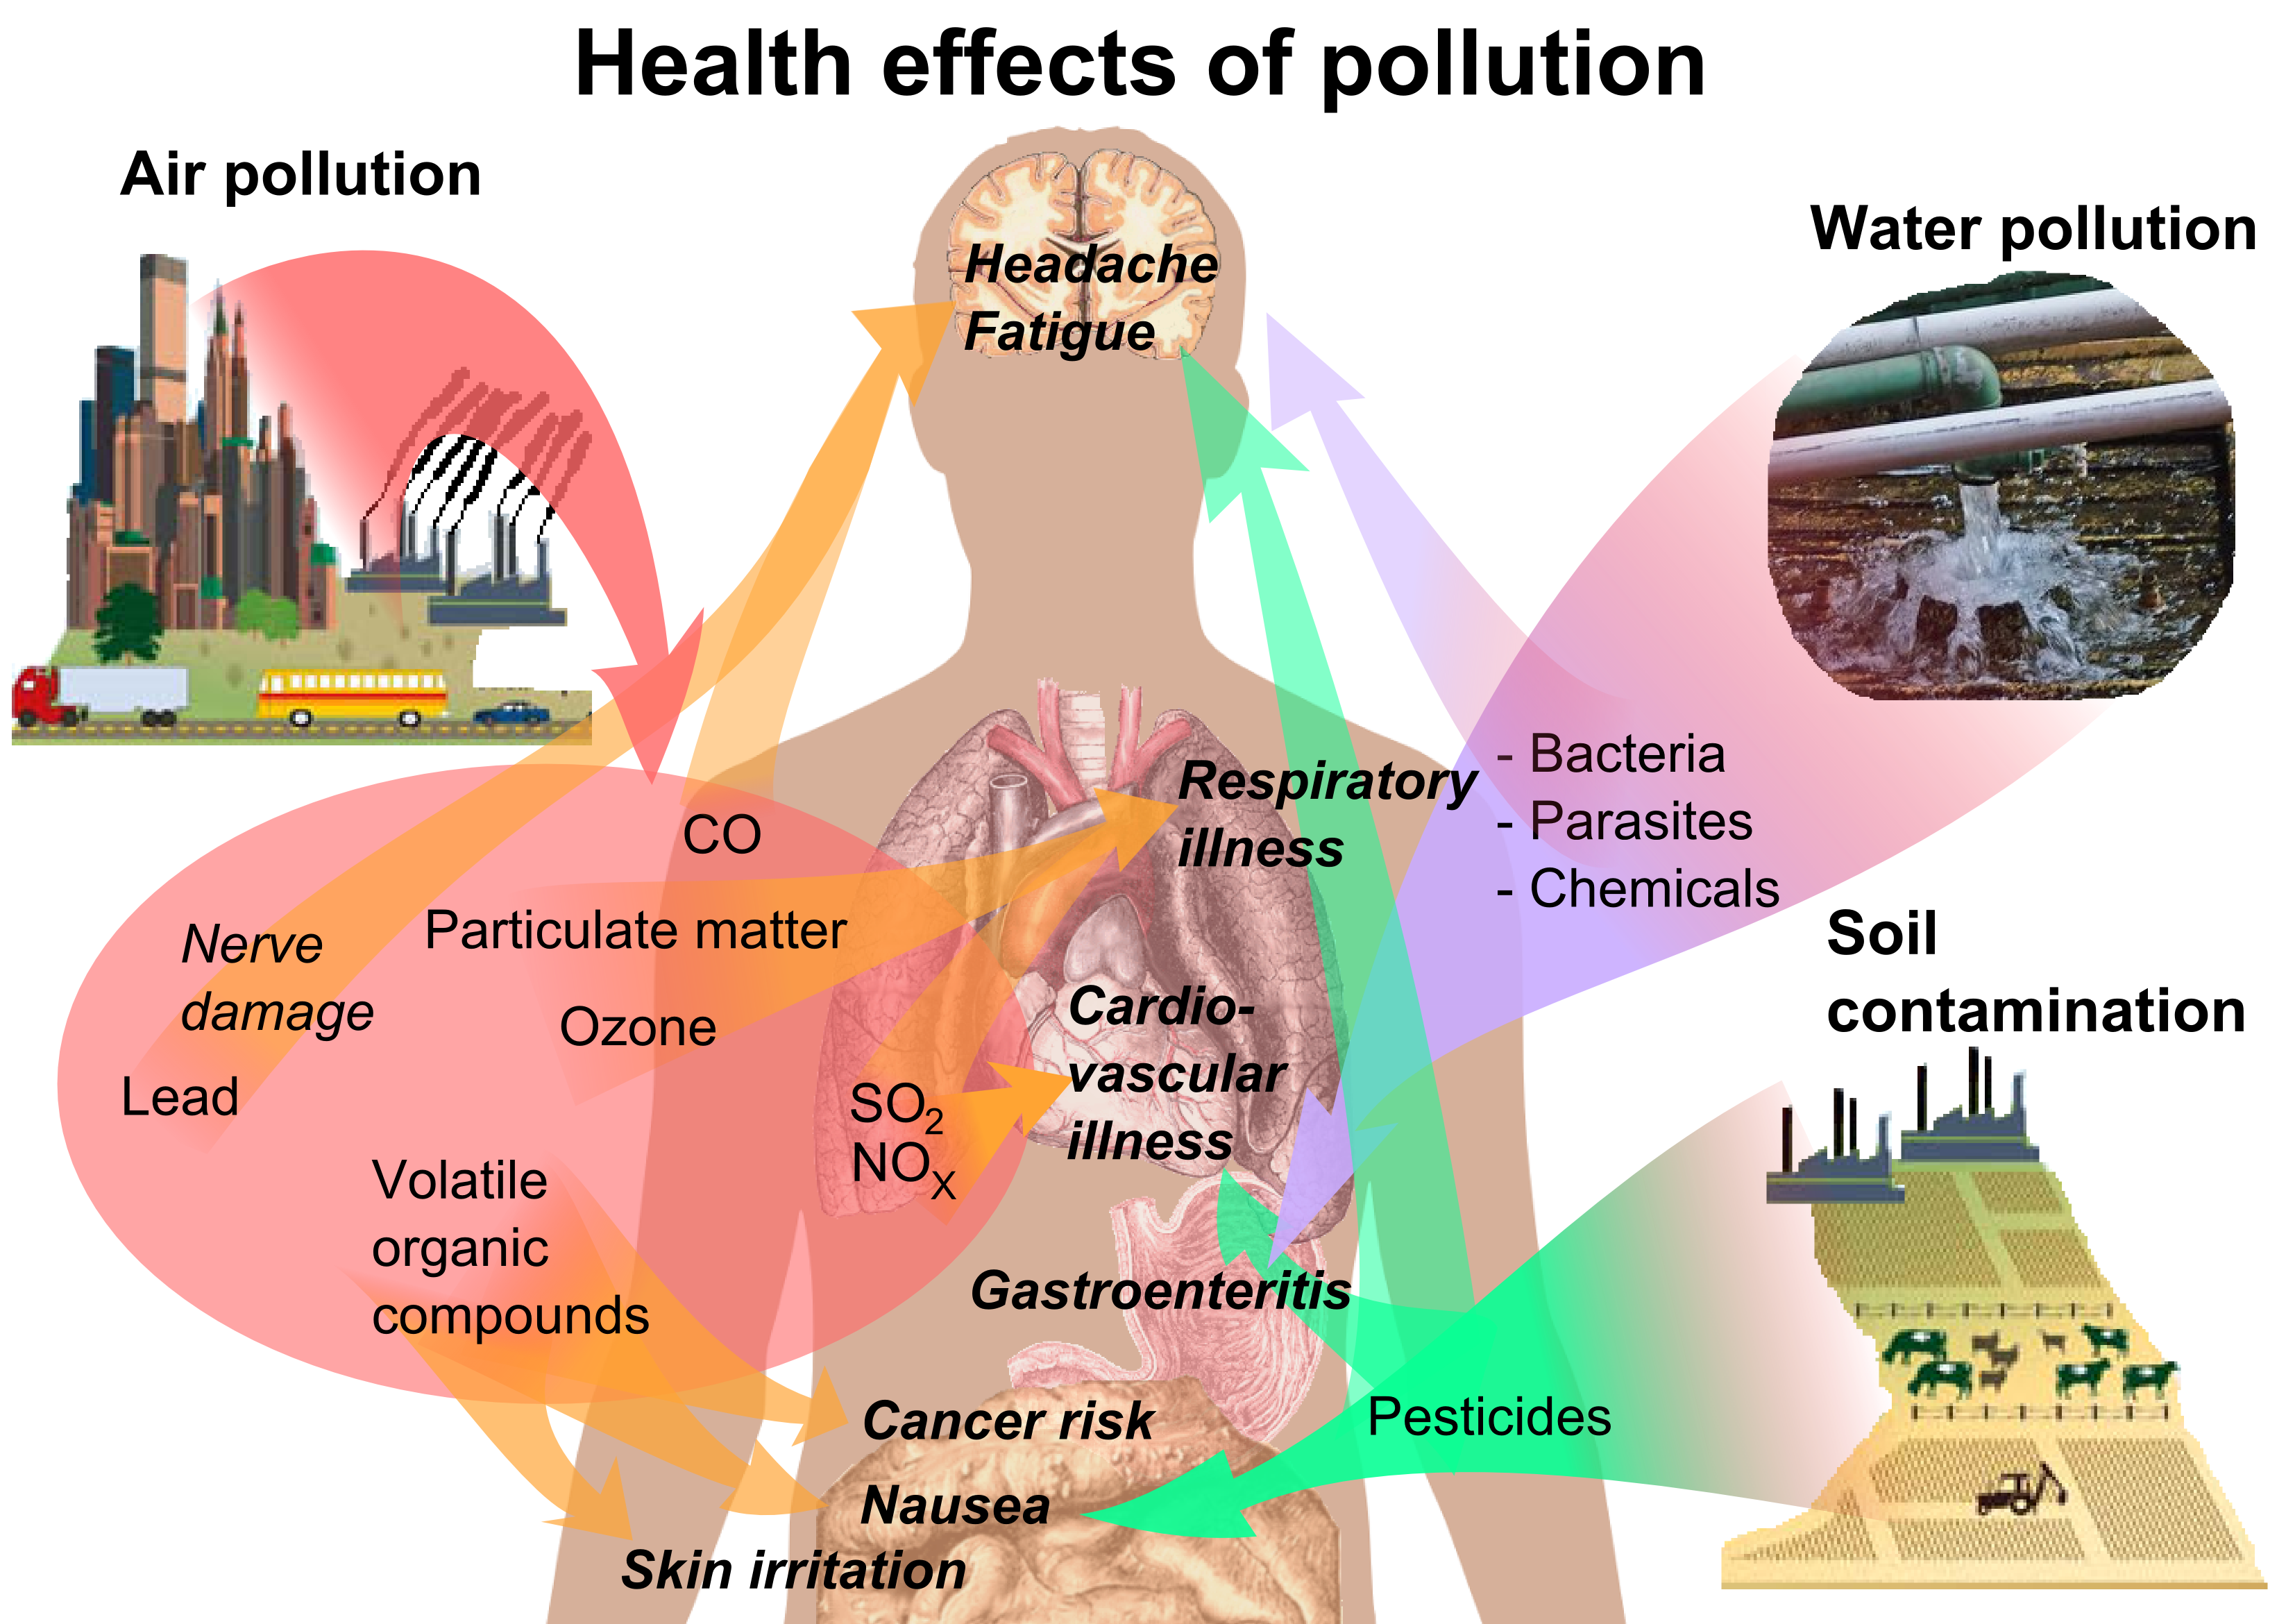 human effects on our environment Chemicals in the water also have negative effects on our health pesticides – can damage the nervous system and cause cancer because of the carbonates and organophosphates that they contain chlorides can cause reproductive and endocrinal damage.